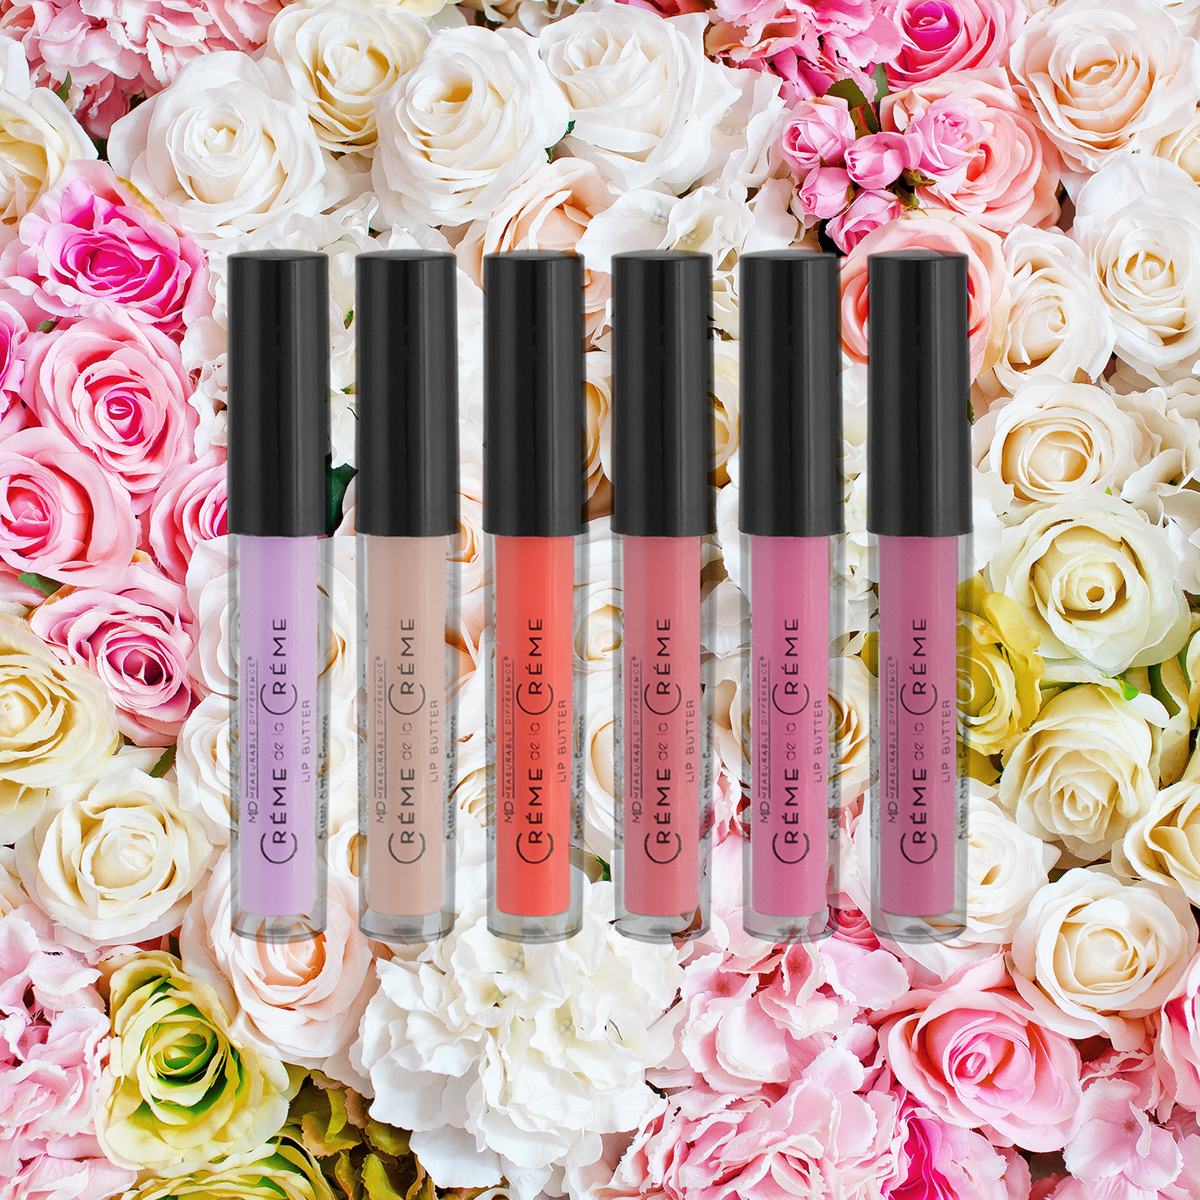 12pc Lip Gloss Matte Crémé De La Crémé Dulce Bundle